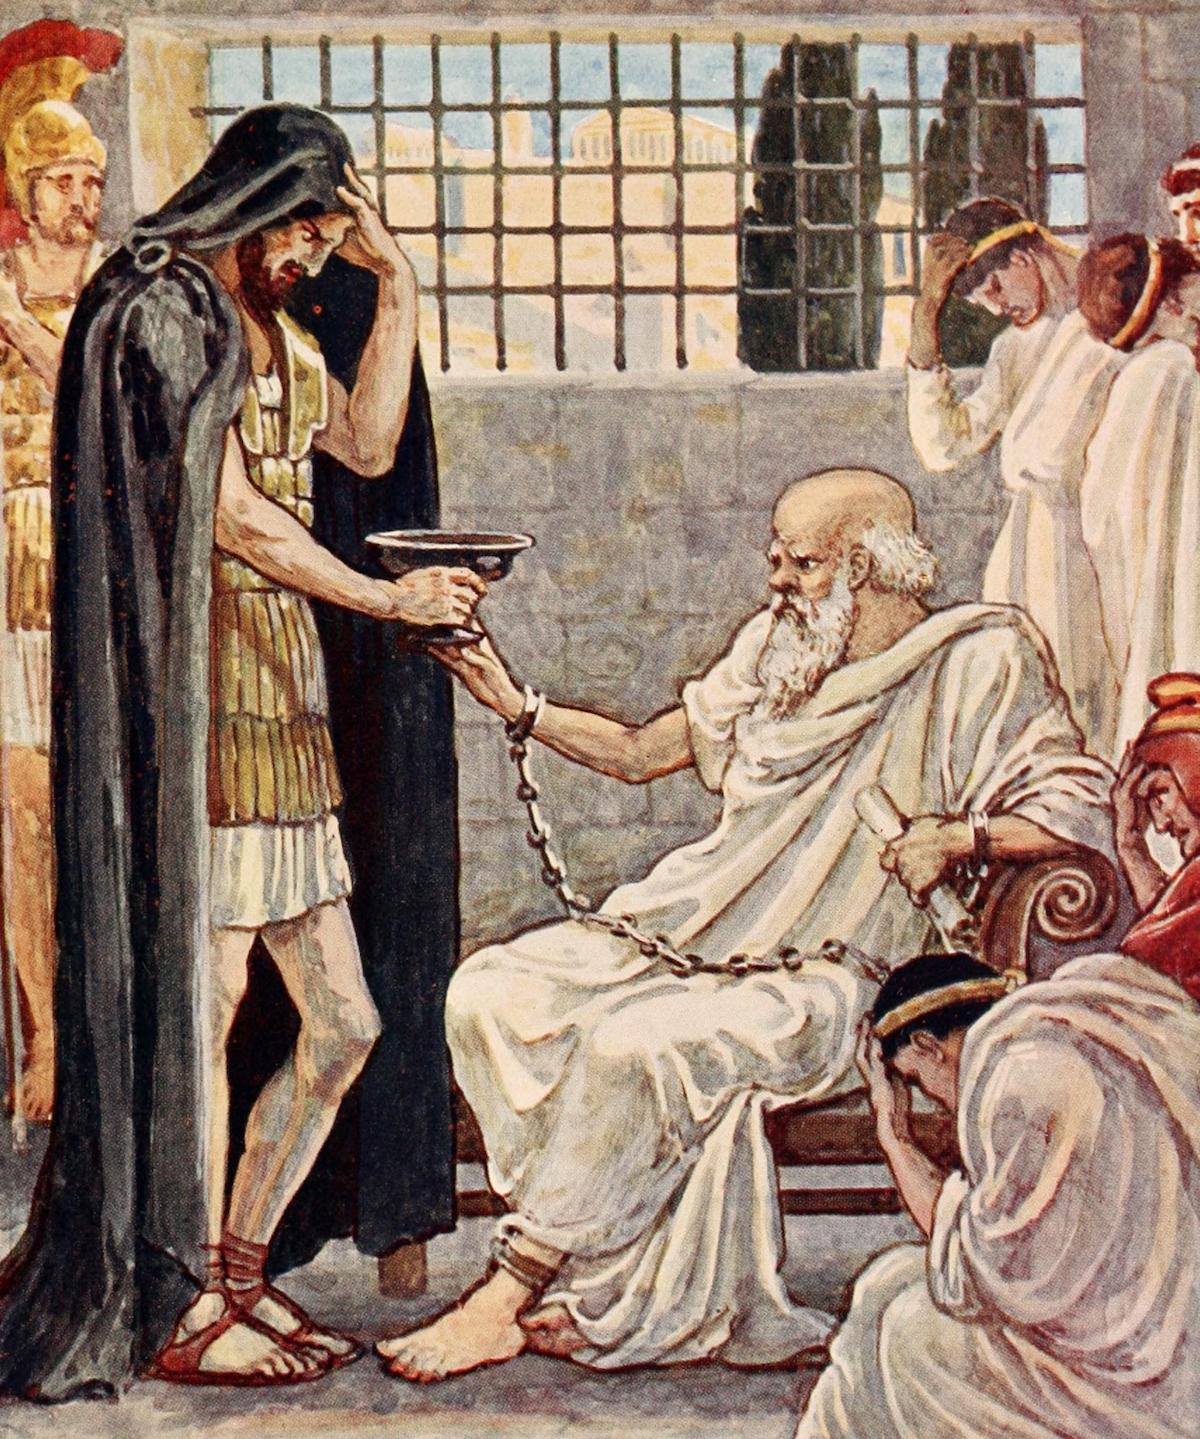 Illustration of the death of Socrates